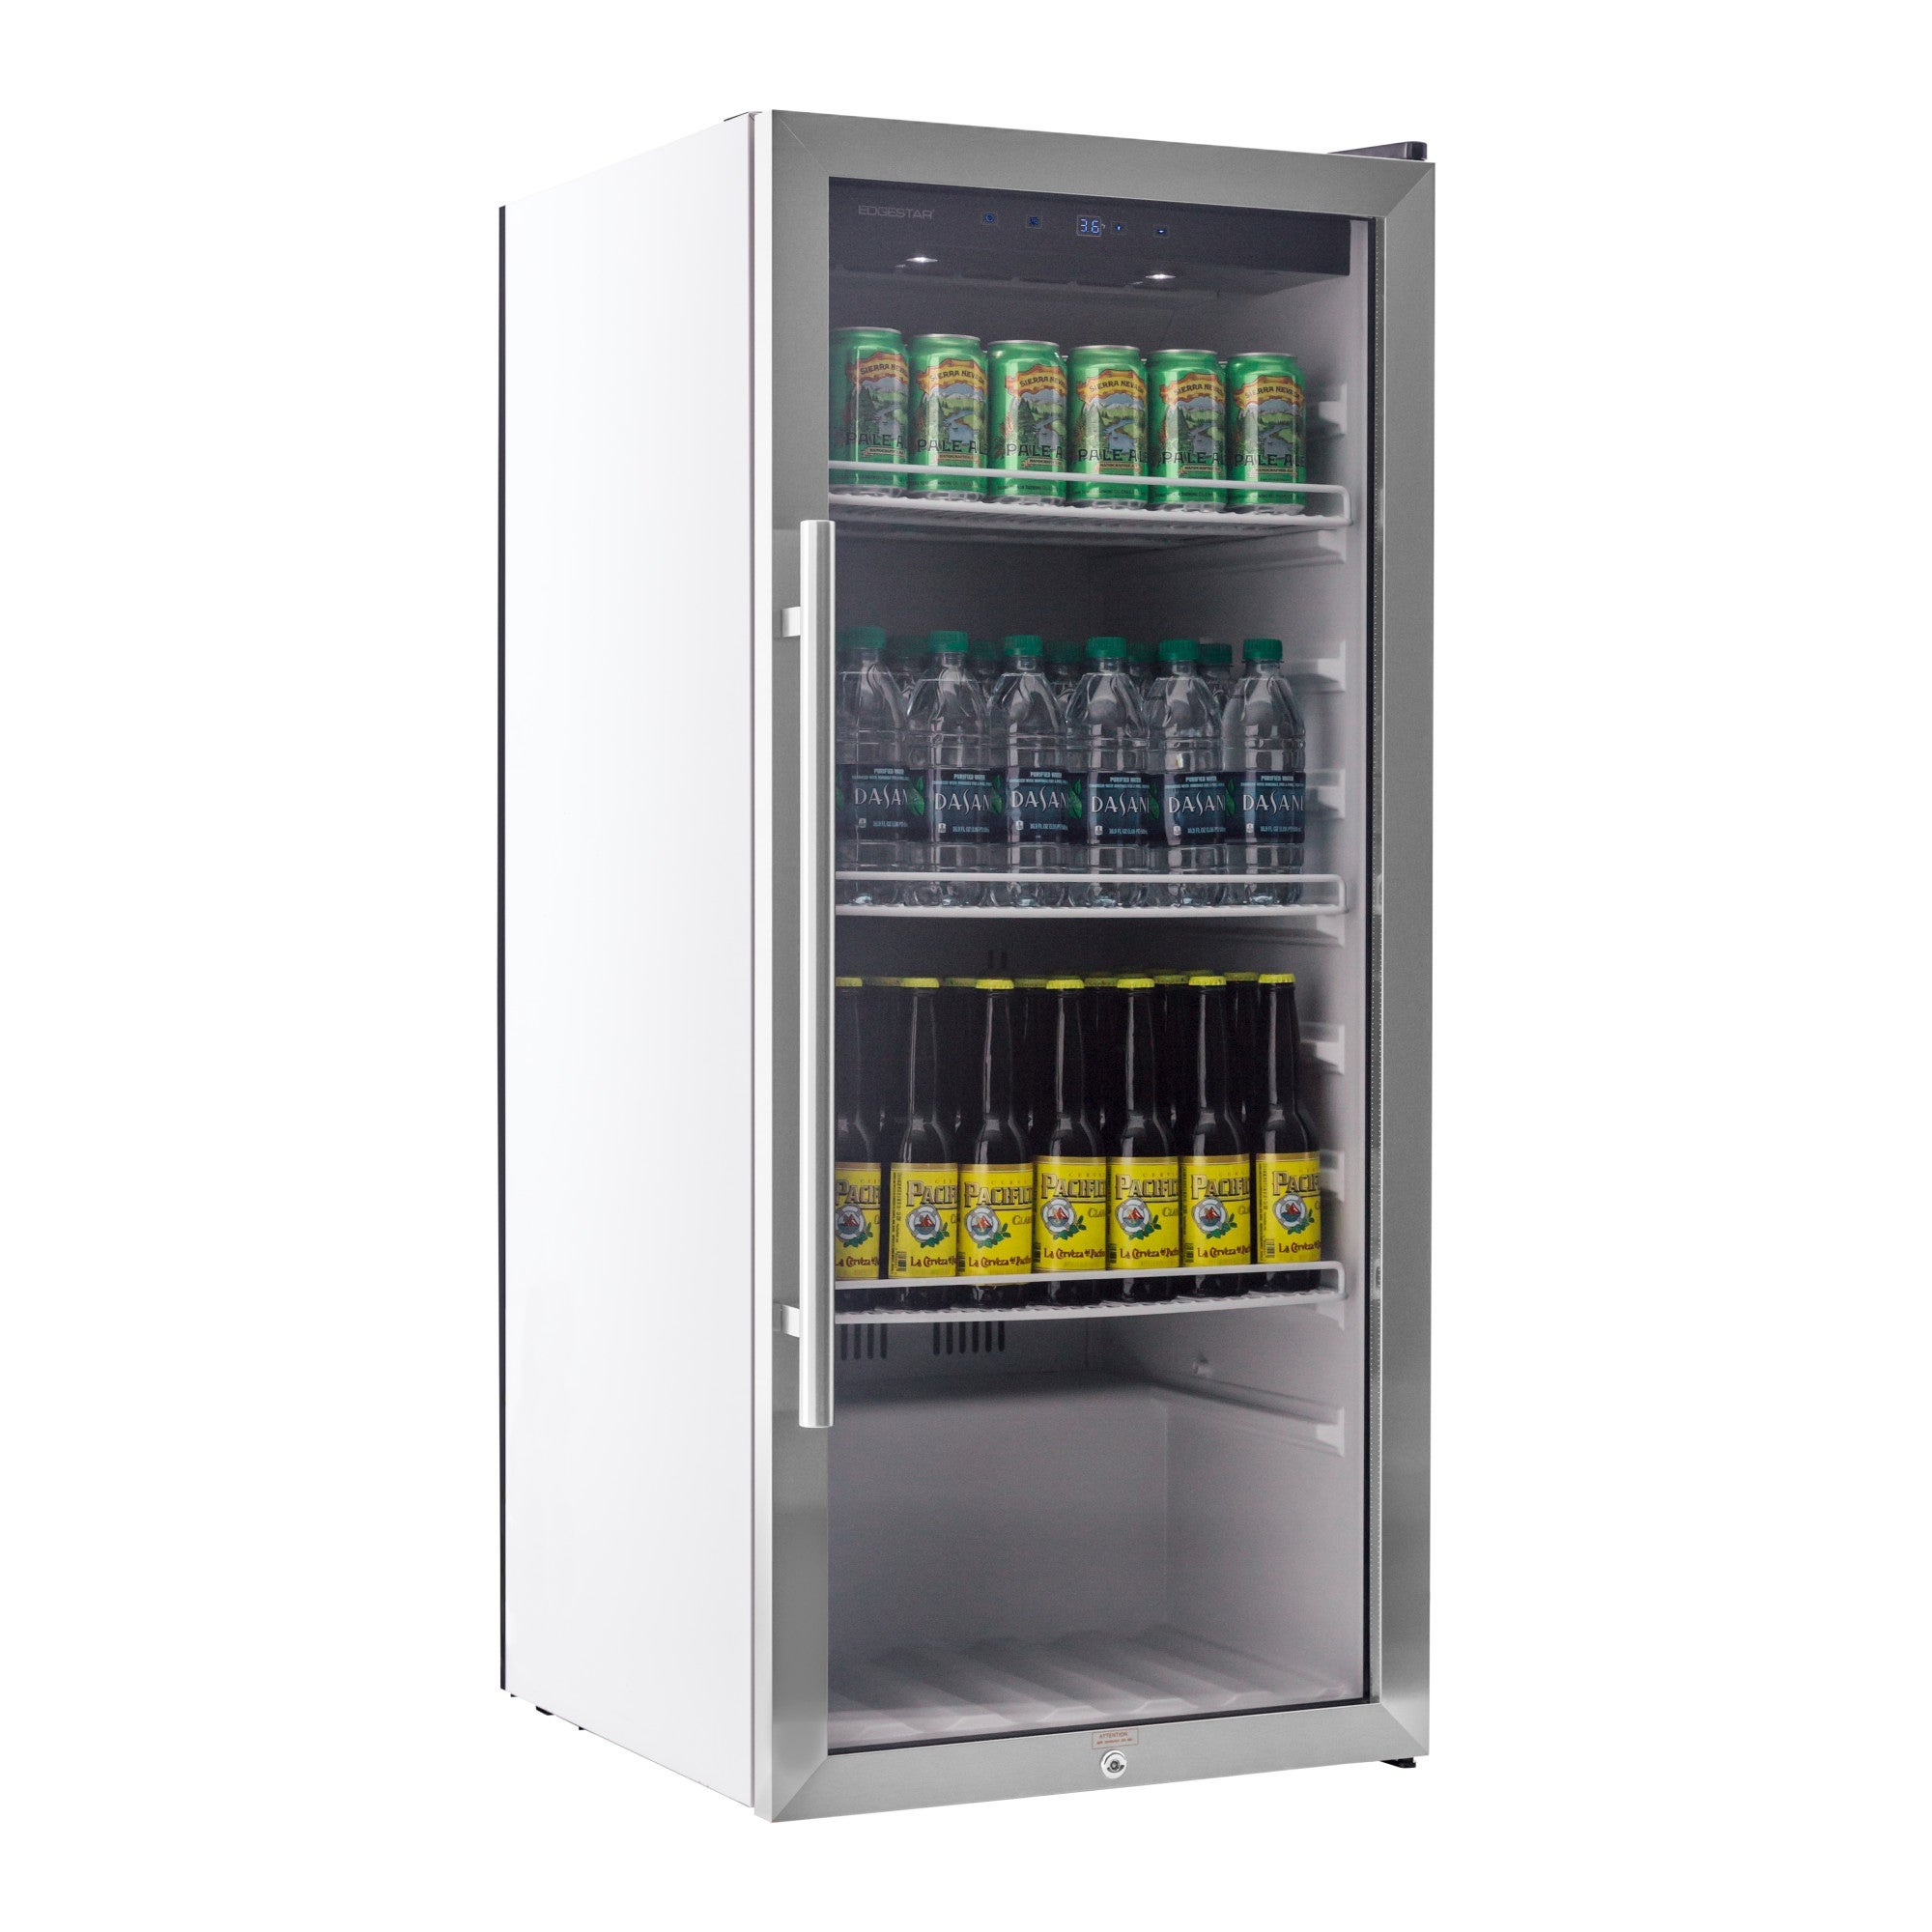 2b4ee345439 Shop EdgeStar VBR240 22in Wide 8.6 Cu. Ft. Commercial Beverage Merchandiser  with Temperature Alarm - Stainless Steel - Free Shipping Today - Overstock  - ...